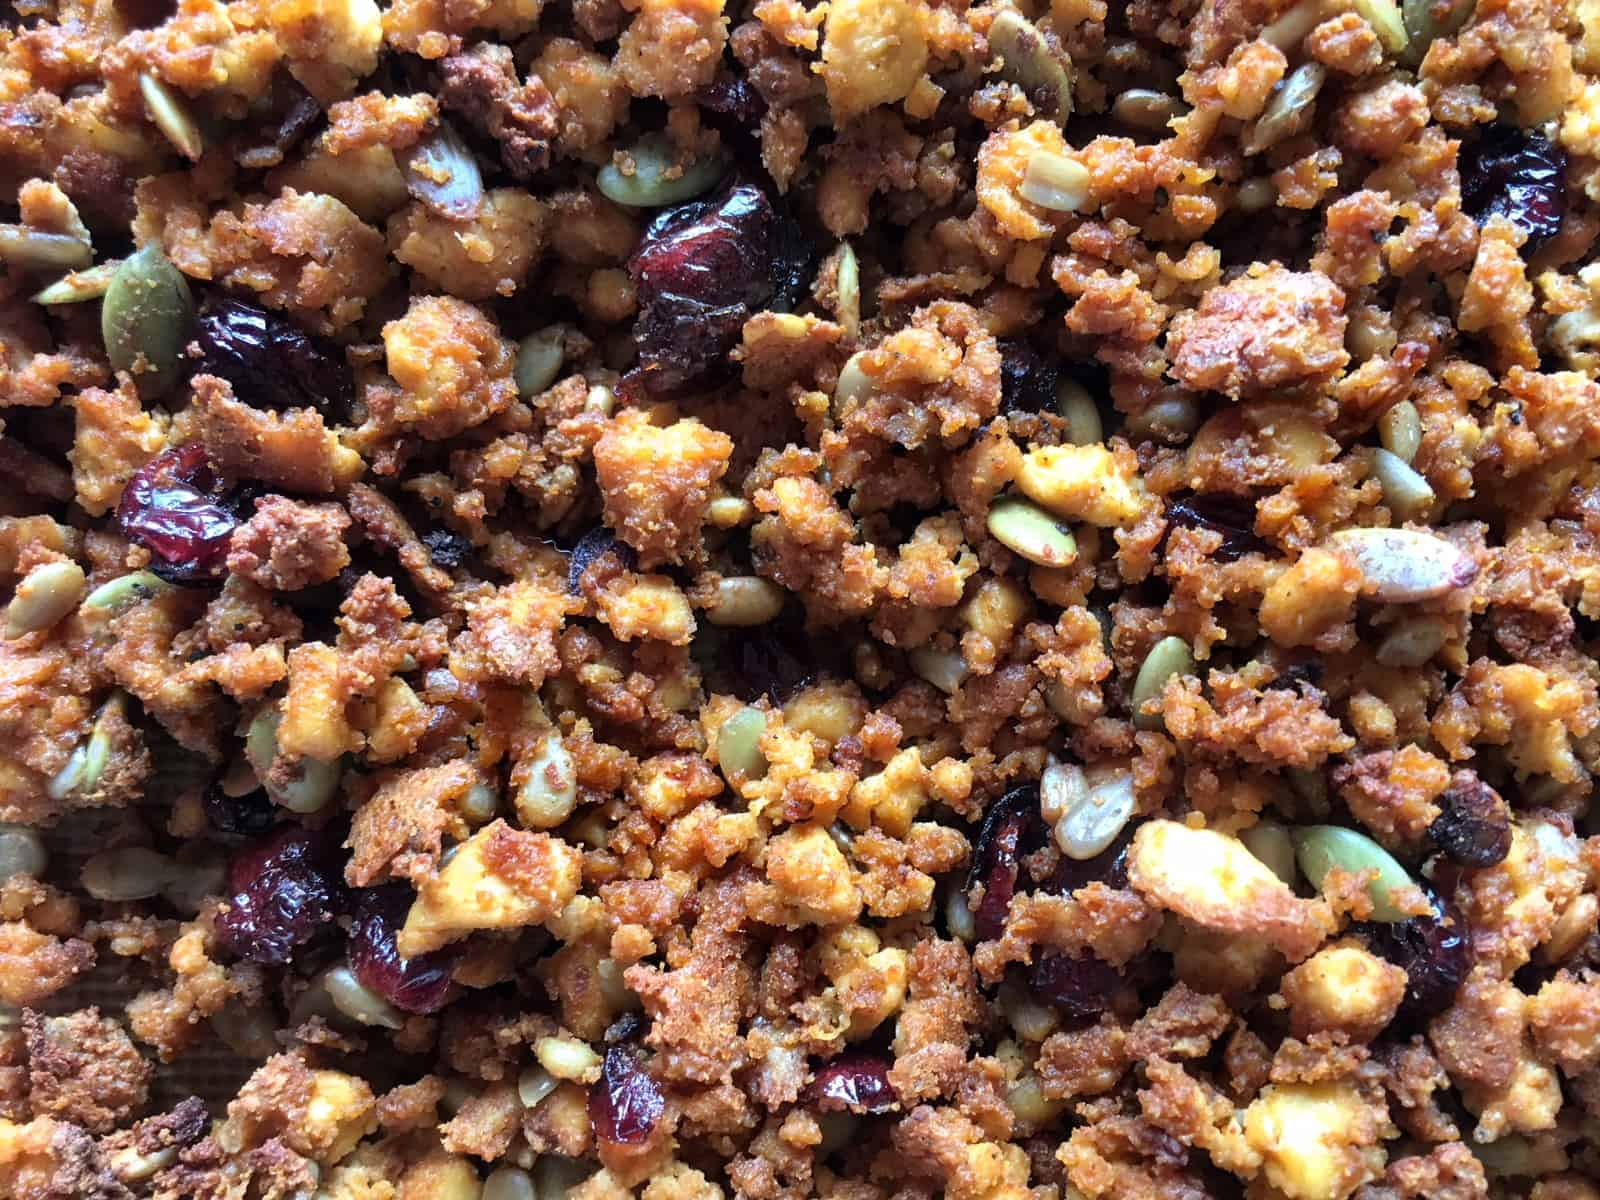 Trail Mix Tofu Crumbles